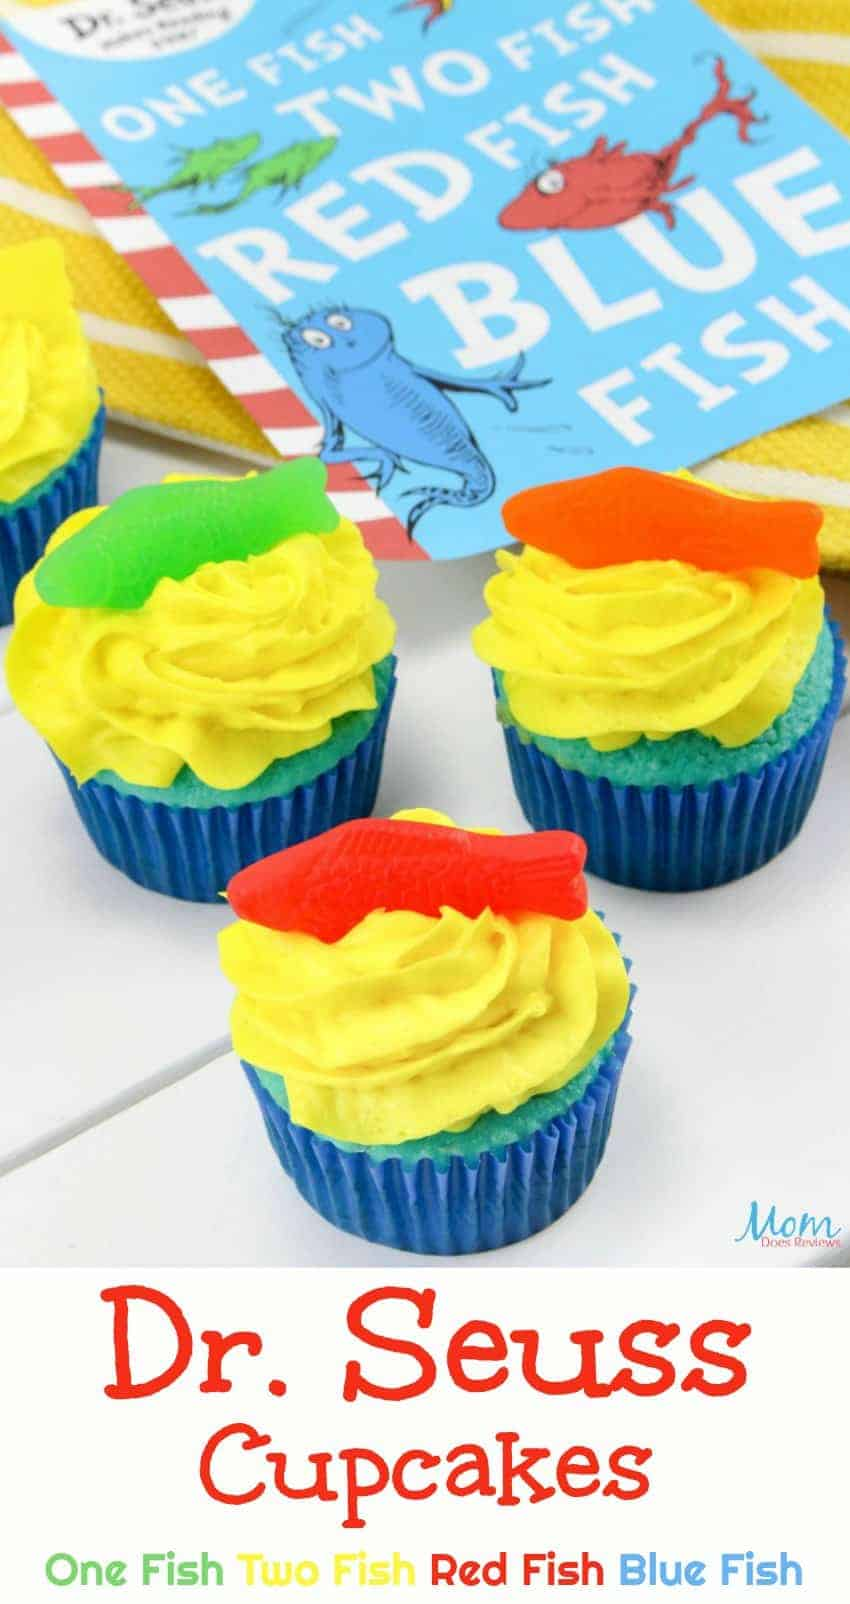 Dr.-Seuss-Cupcakes-One-Fish-Two-Fish-Red-Fish-Blue-Fish-BANNER